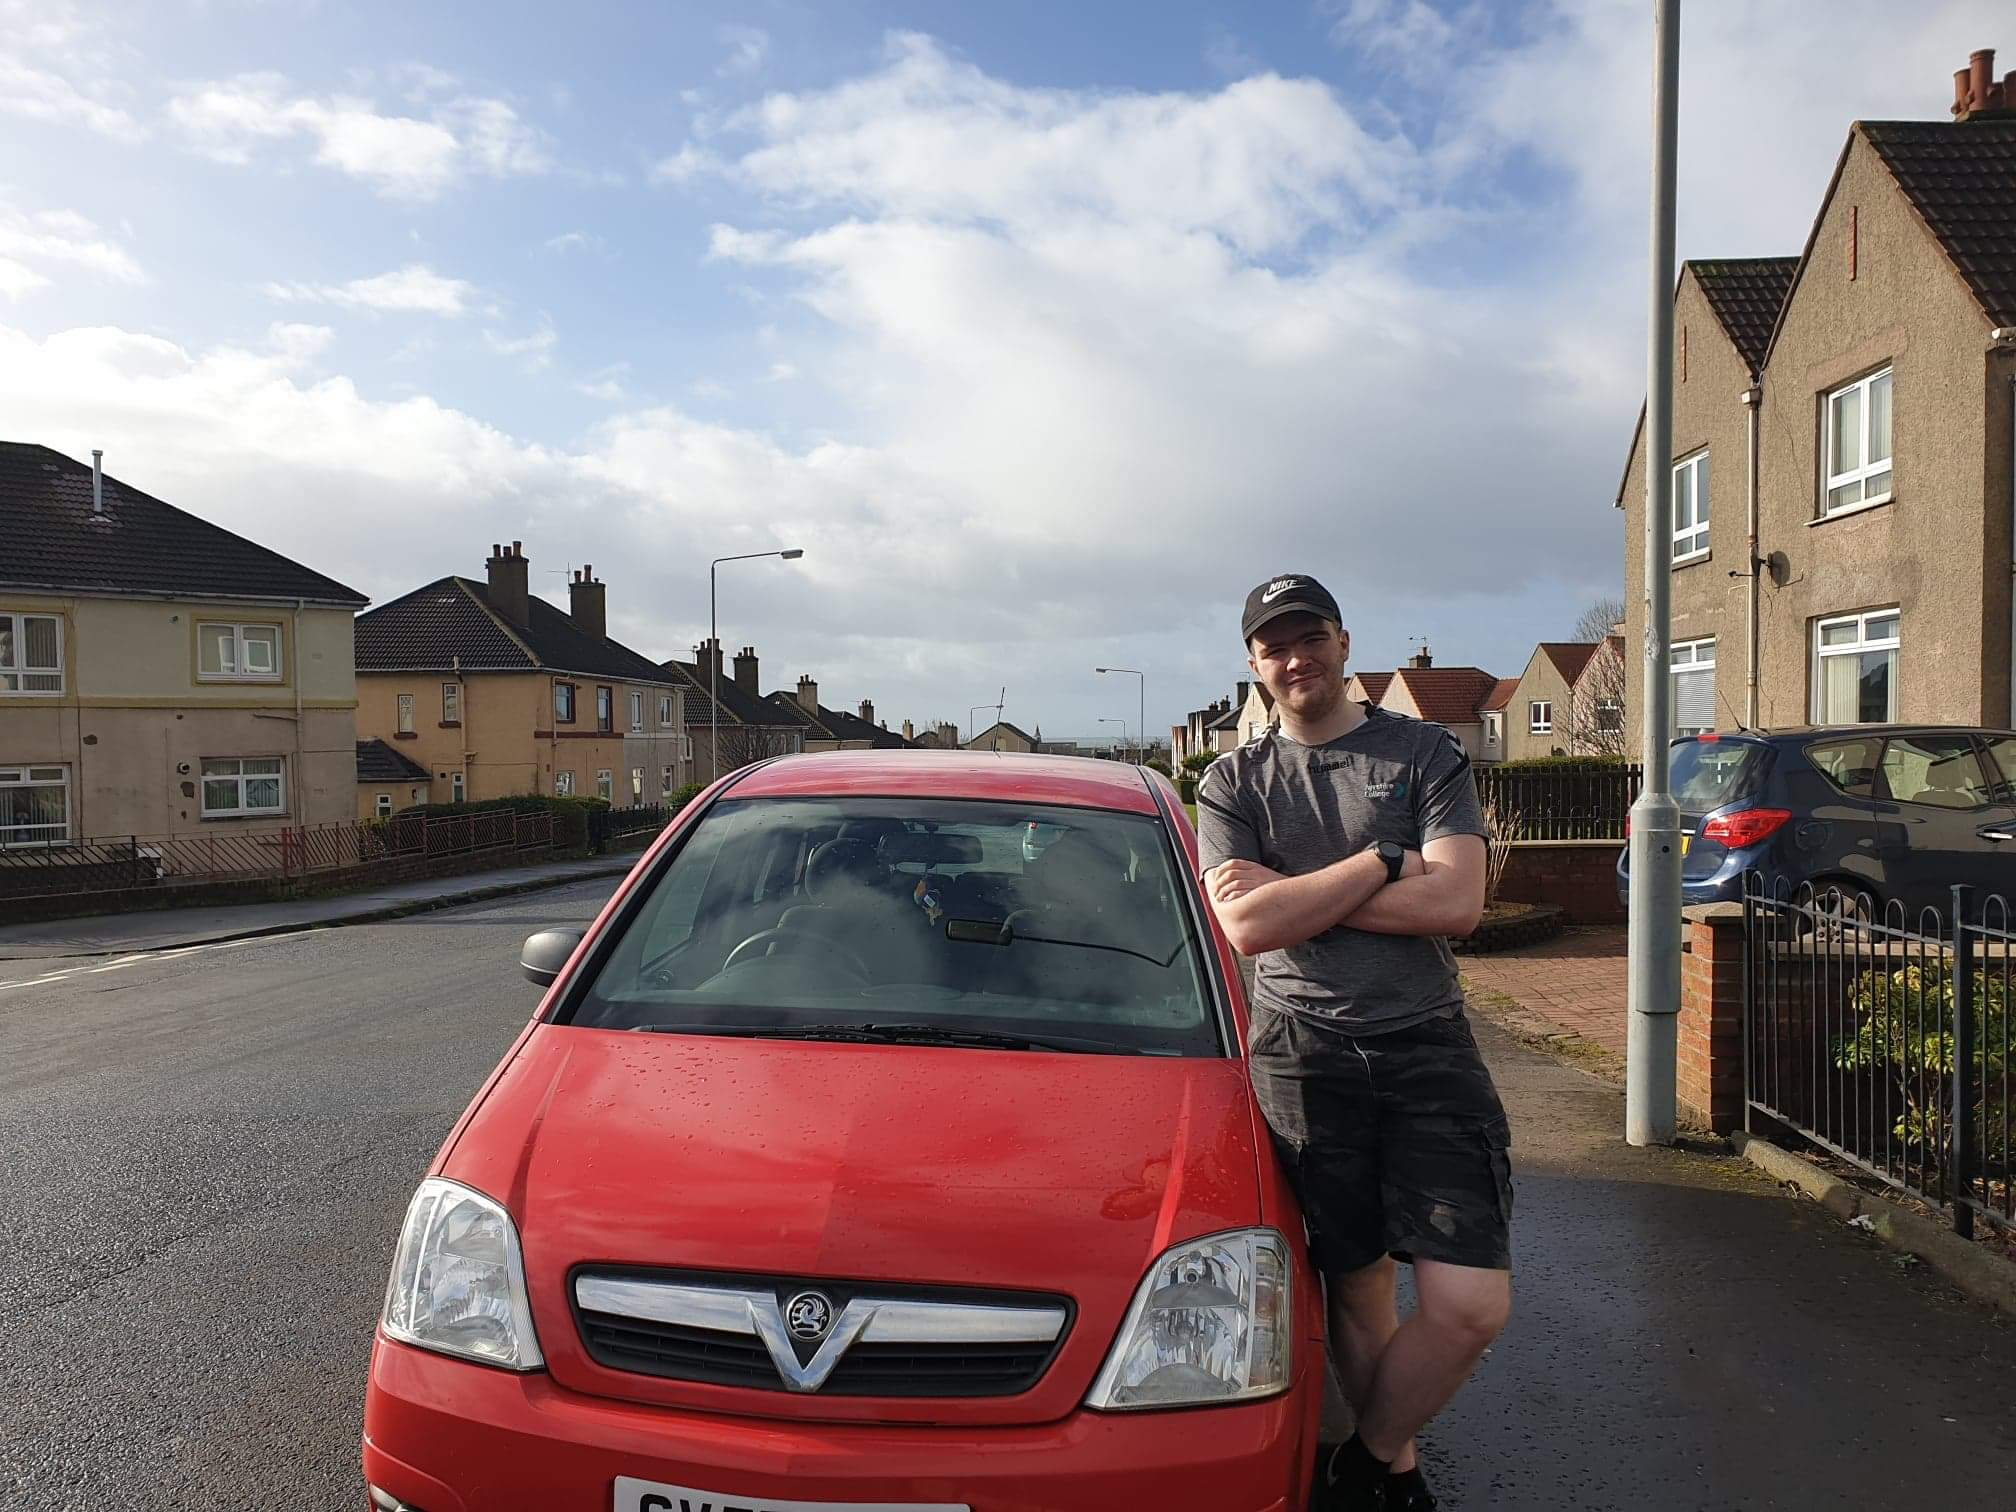 Billy Mair poses with his car